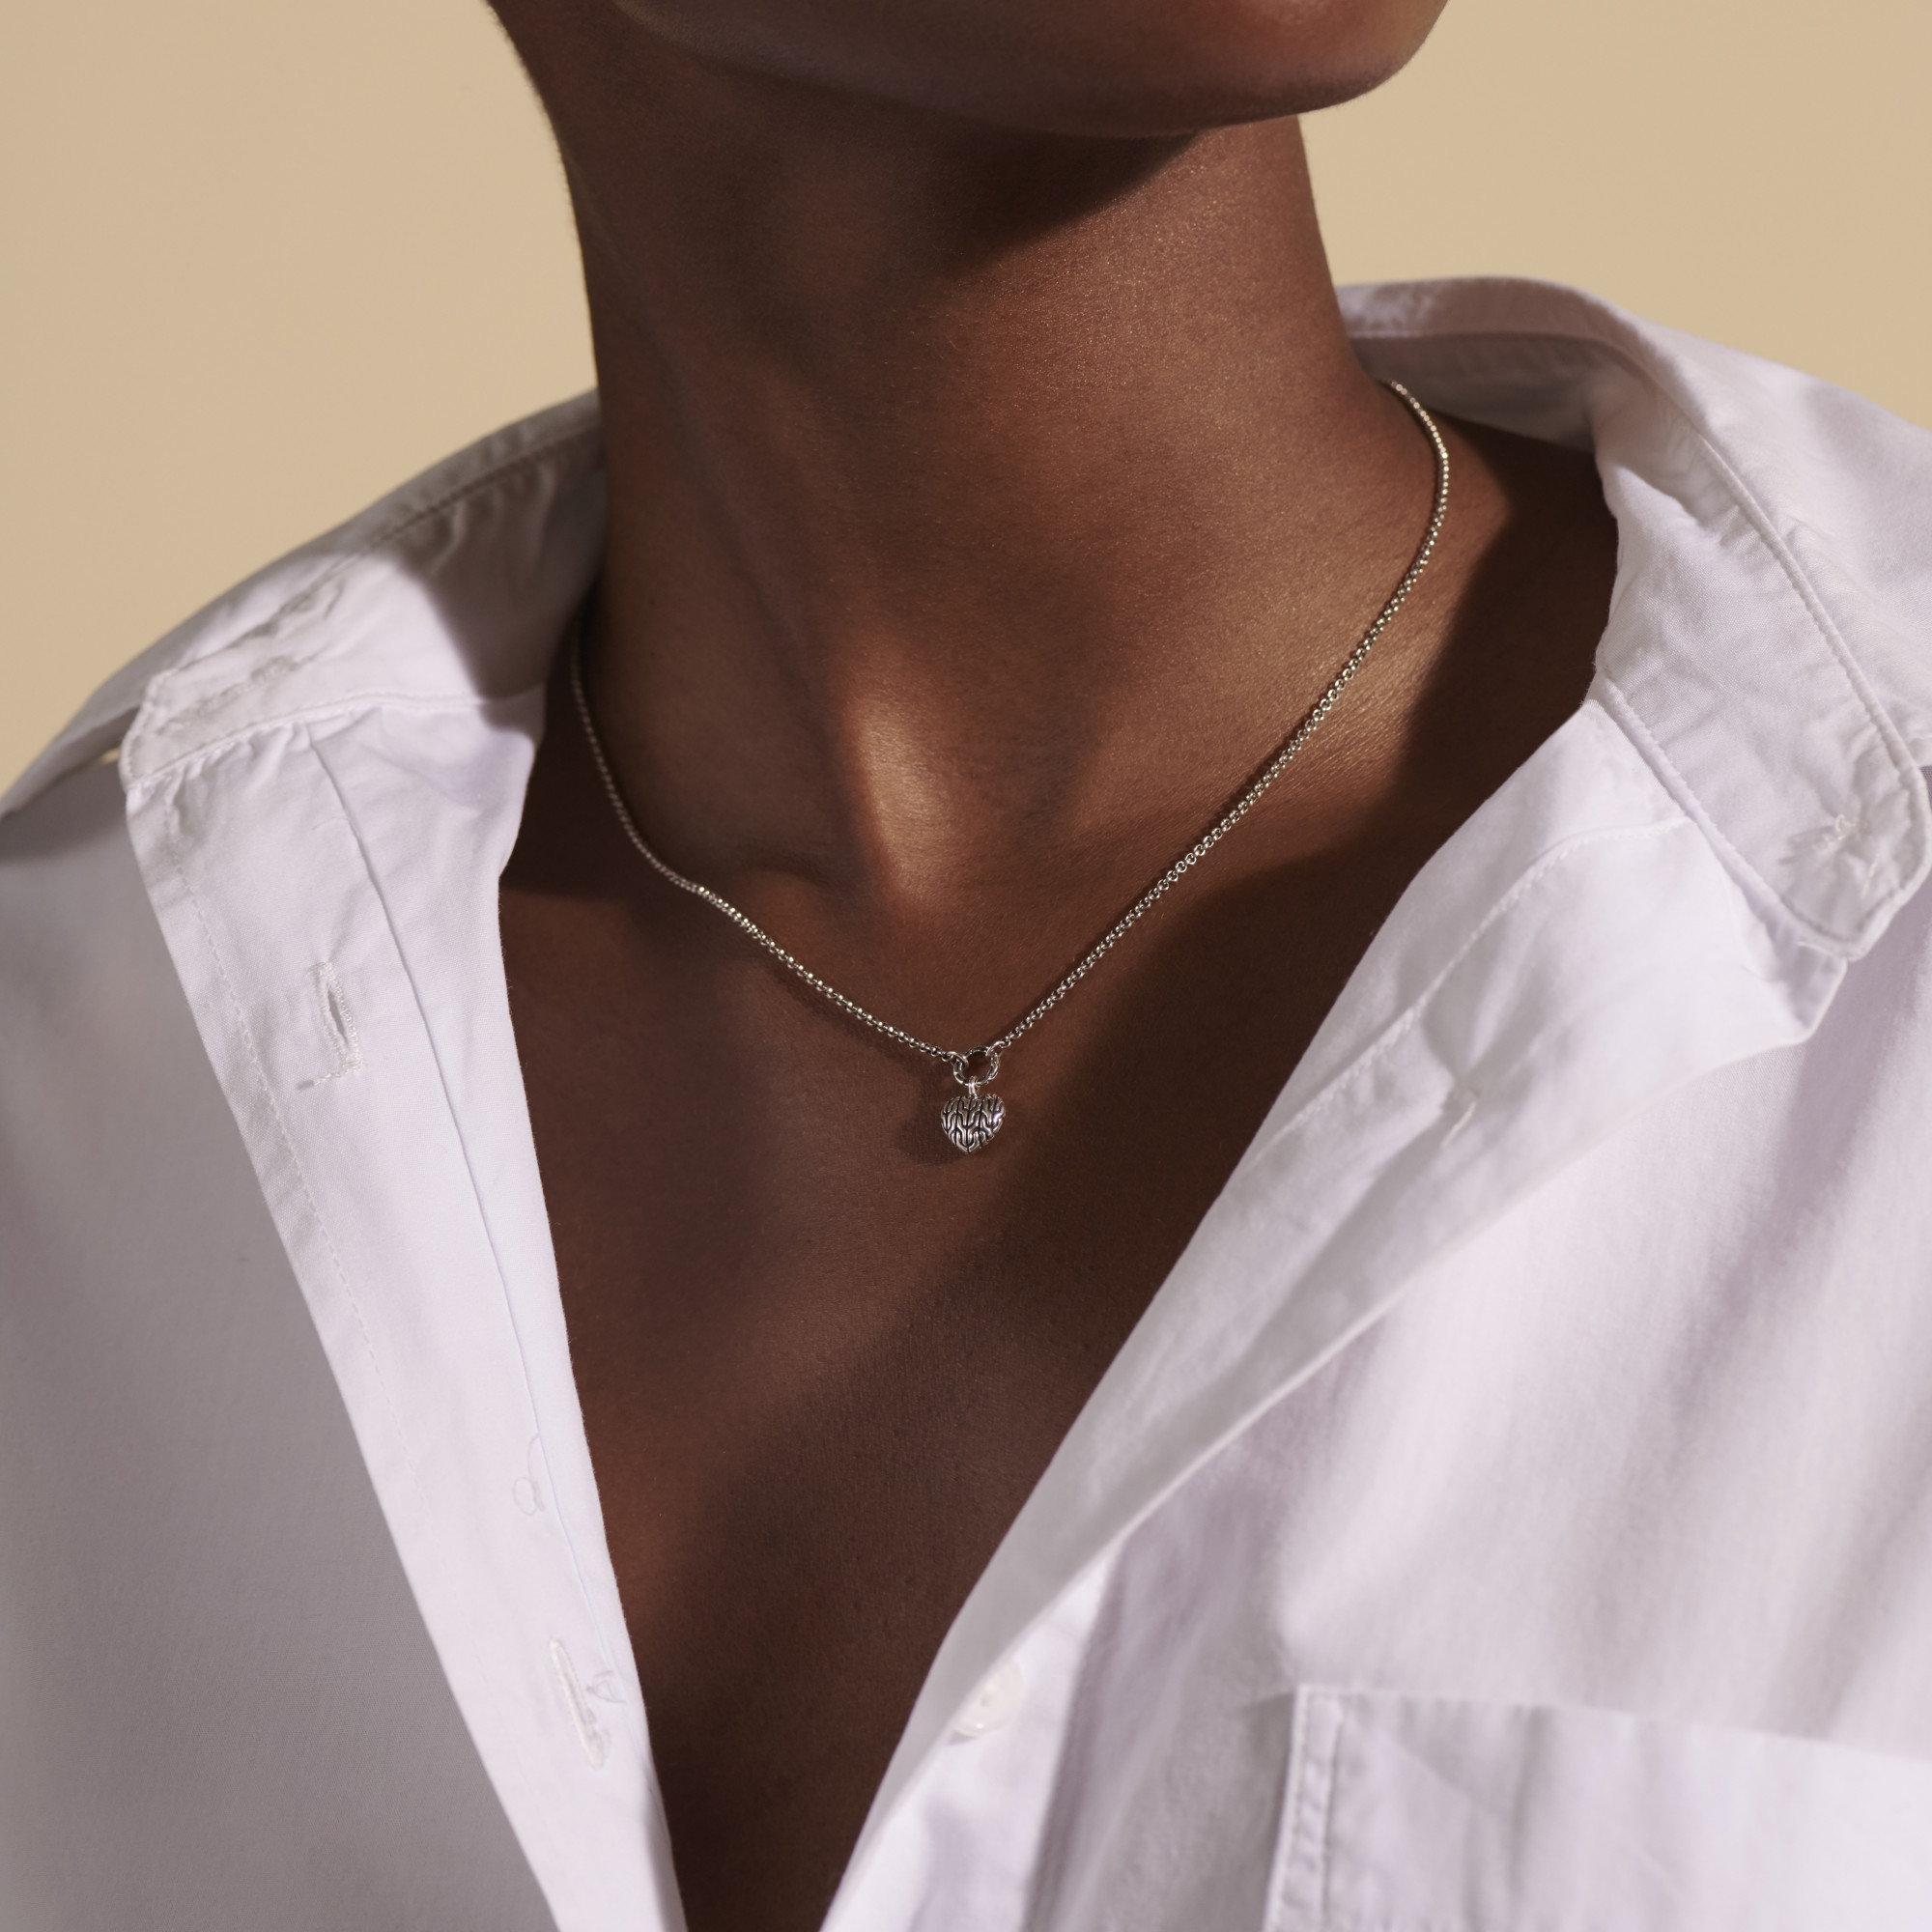 Classic Chain Heart Pendant Necklace in Silver, , modelview